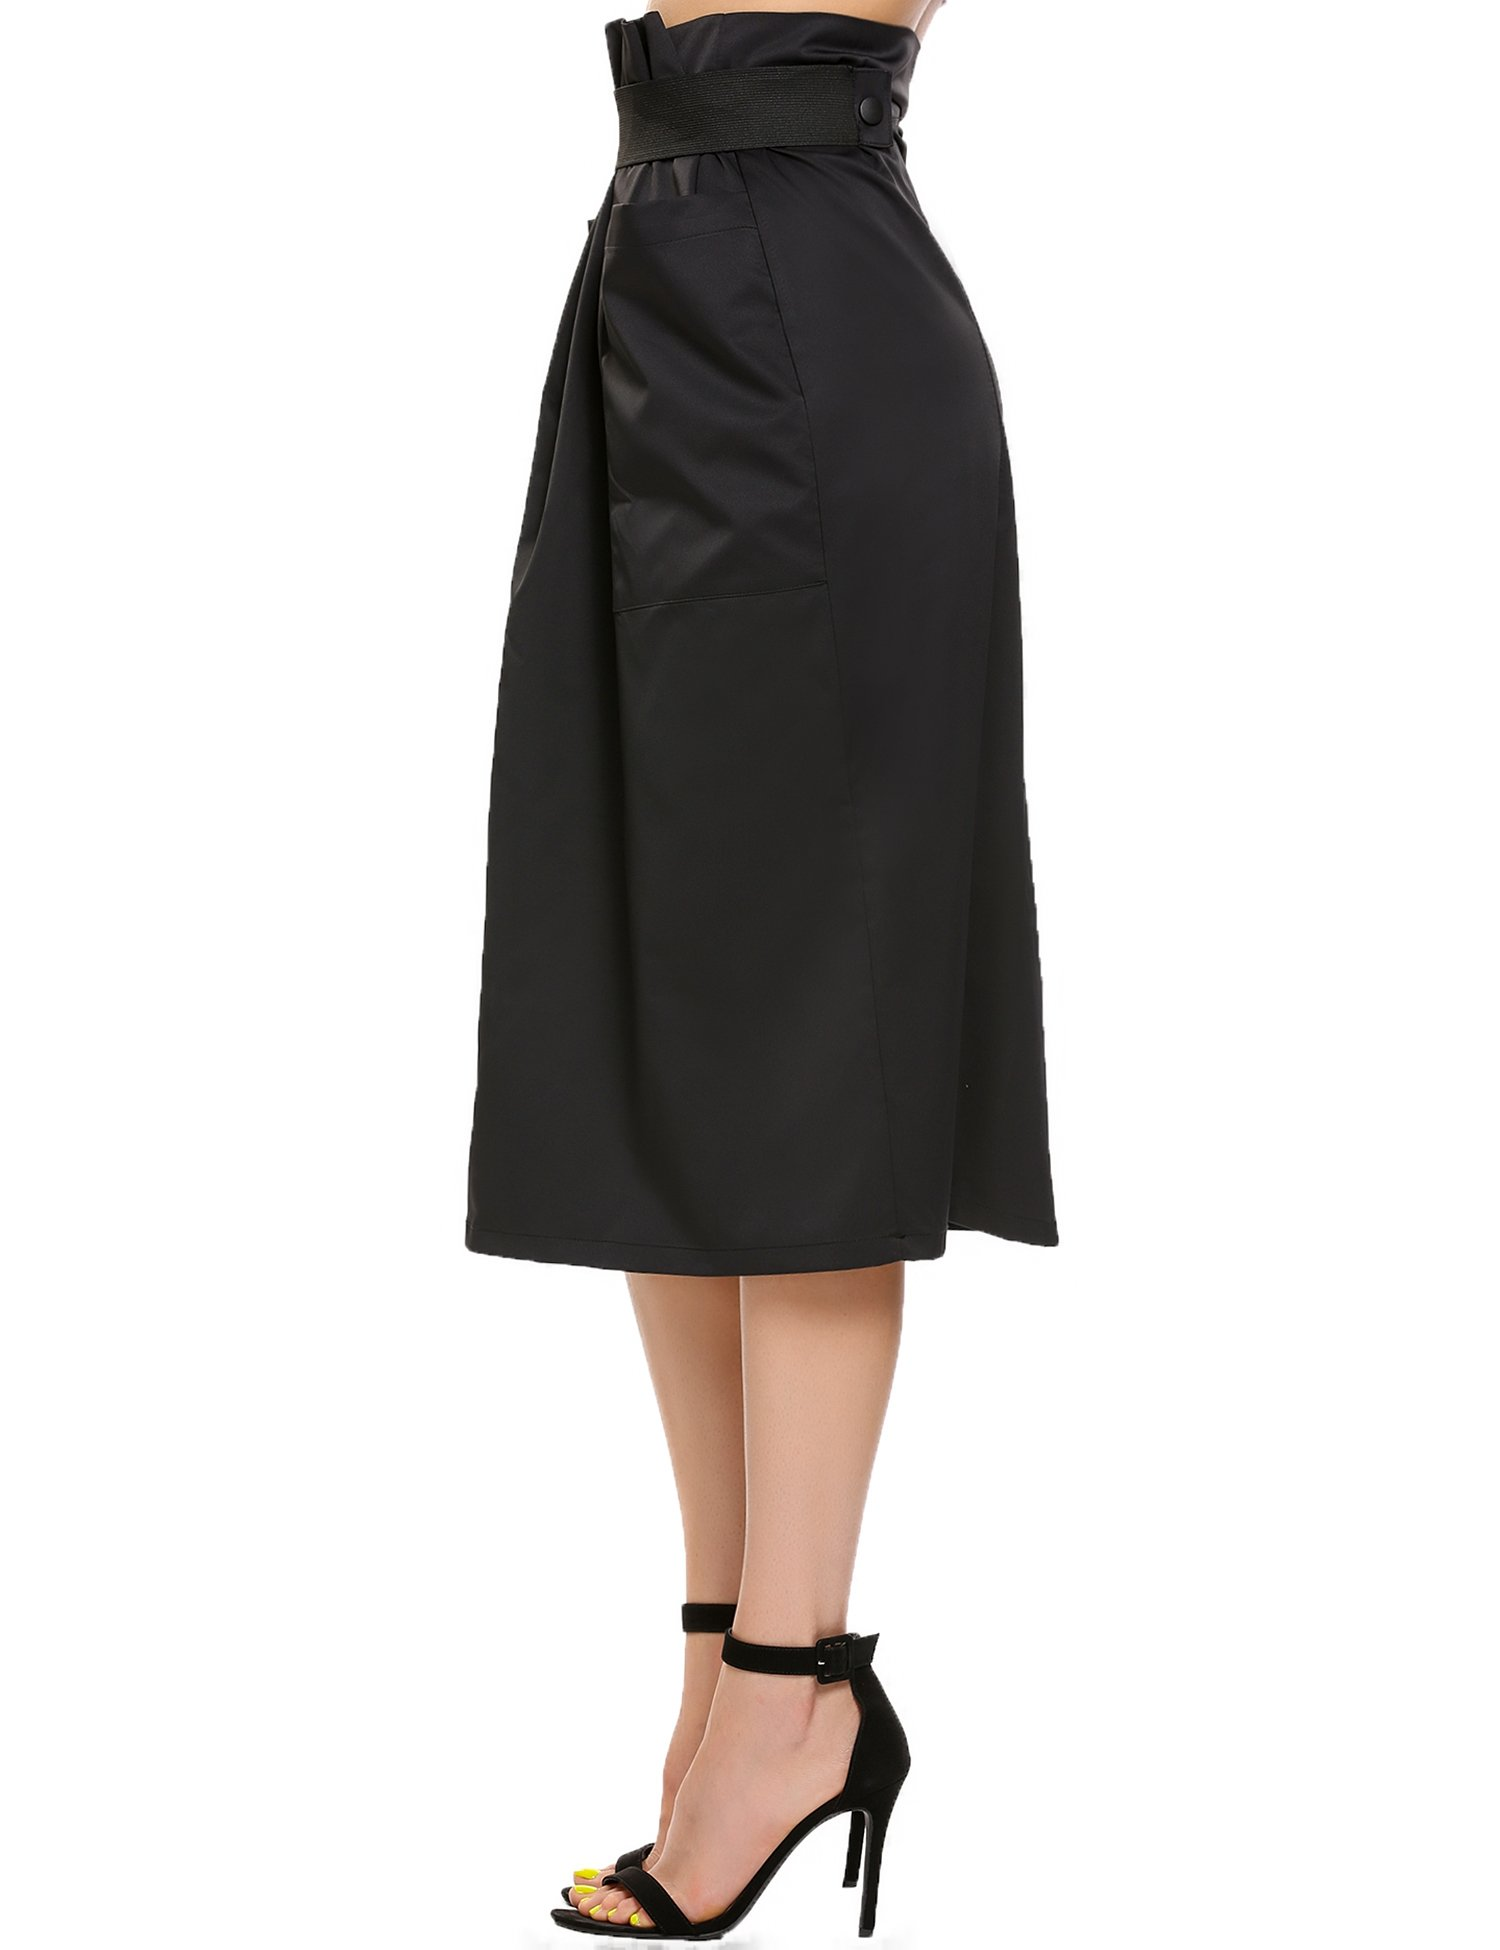 Women Casual High Waisted African A Line Maxi Long Skirt Black Small by Zeagoo (Image #6)